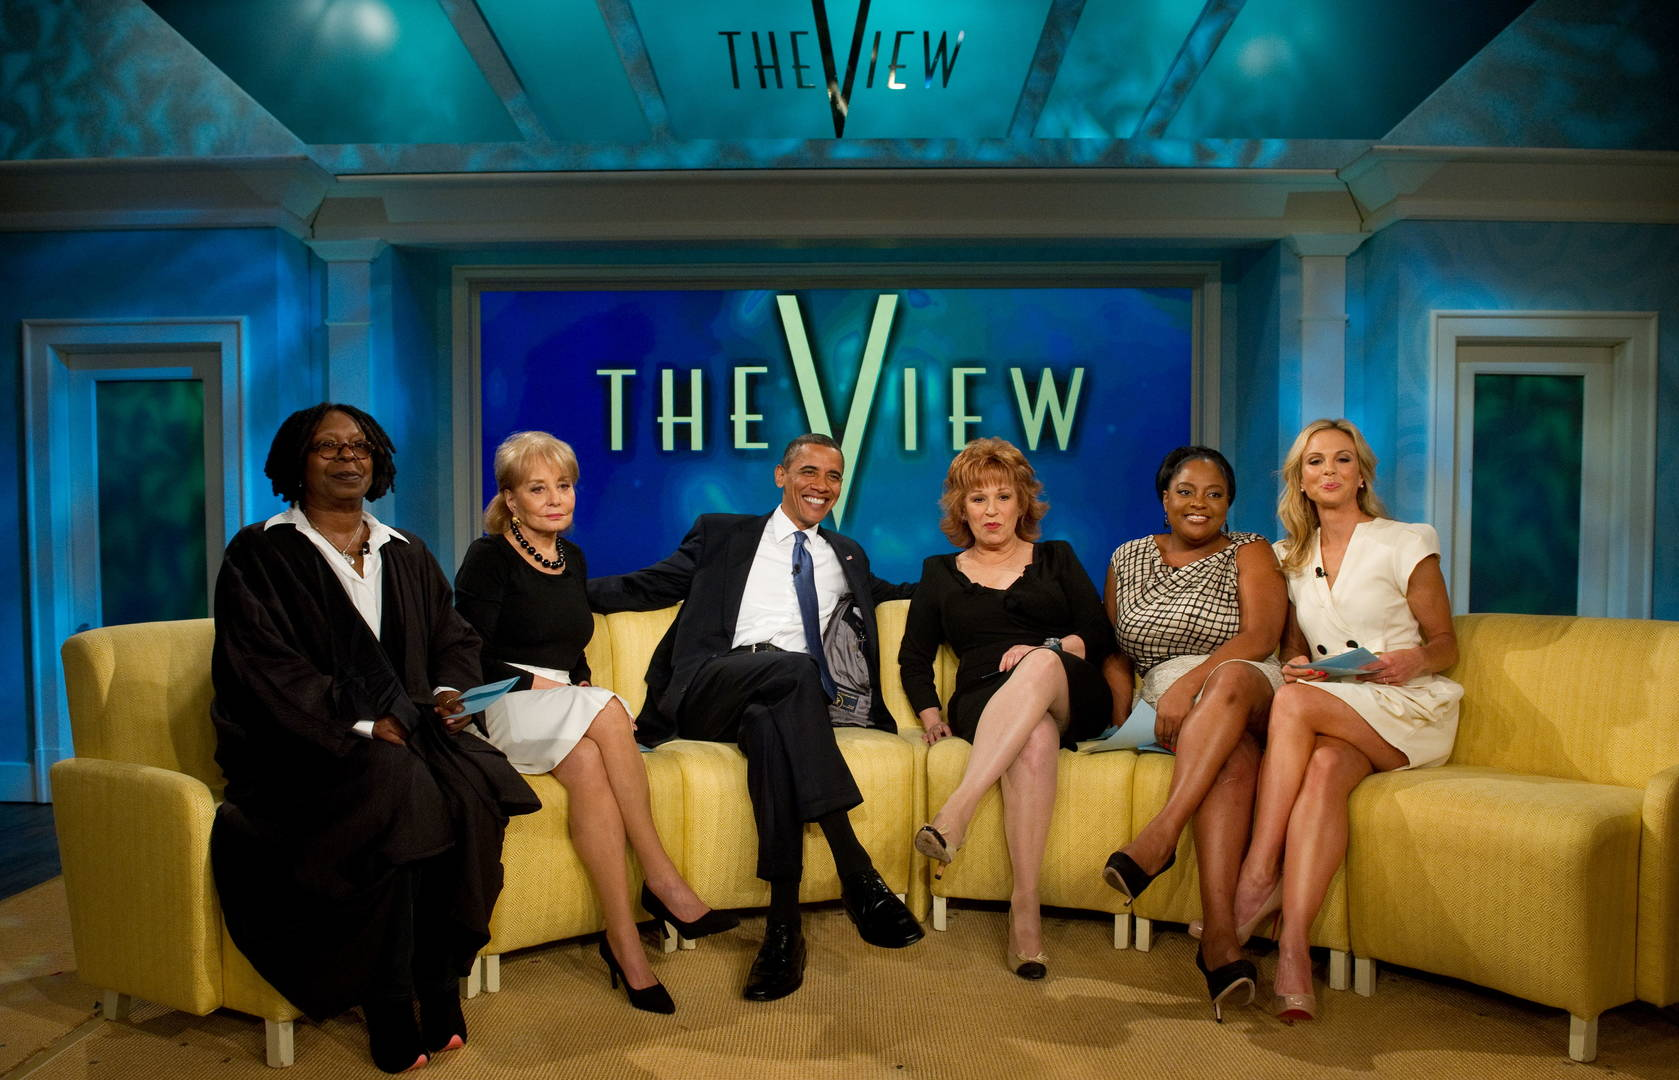 Keke Palmer Millennial The View Co-Host Suggestions